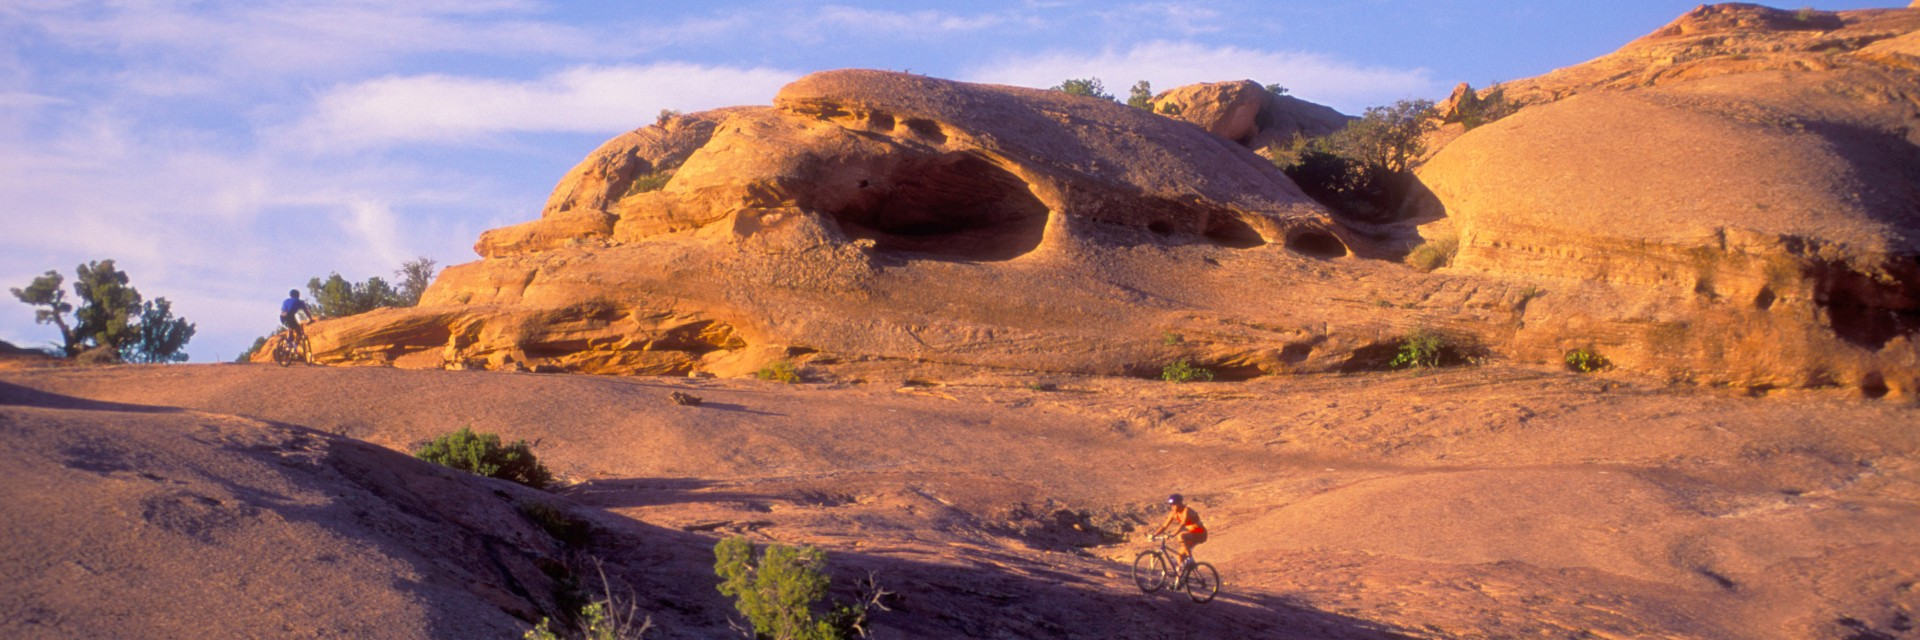 Mountain bikers climb a steep section of the Slickrock Trail during a sunset guided tour close to Moab, UT